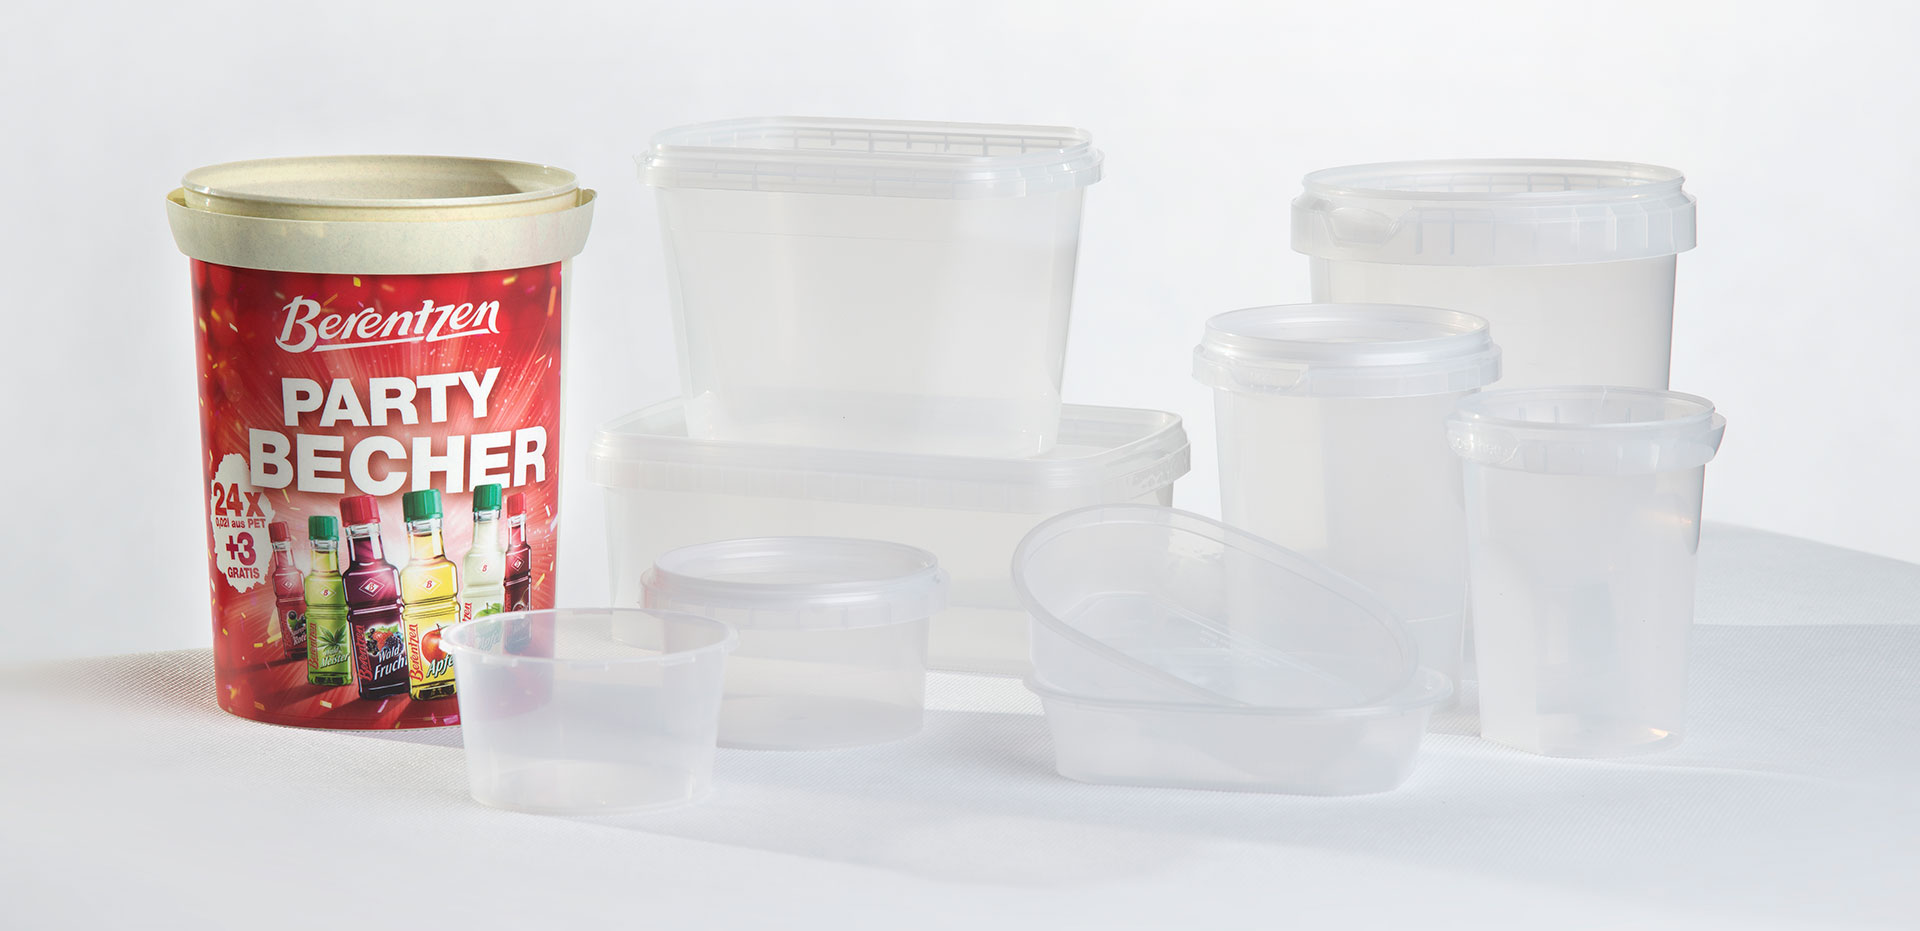 Corcoran Products Packaging Bio-based containers